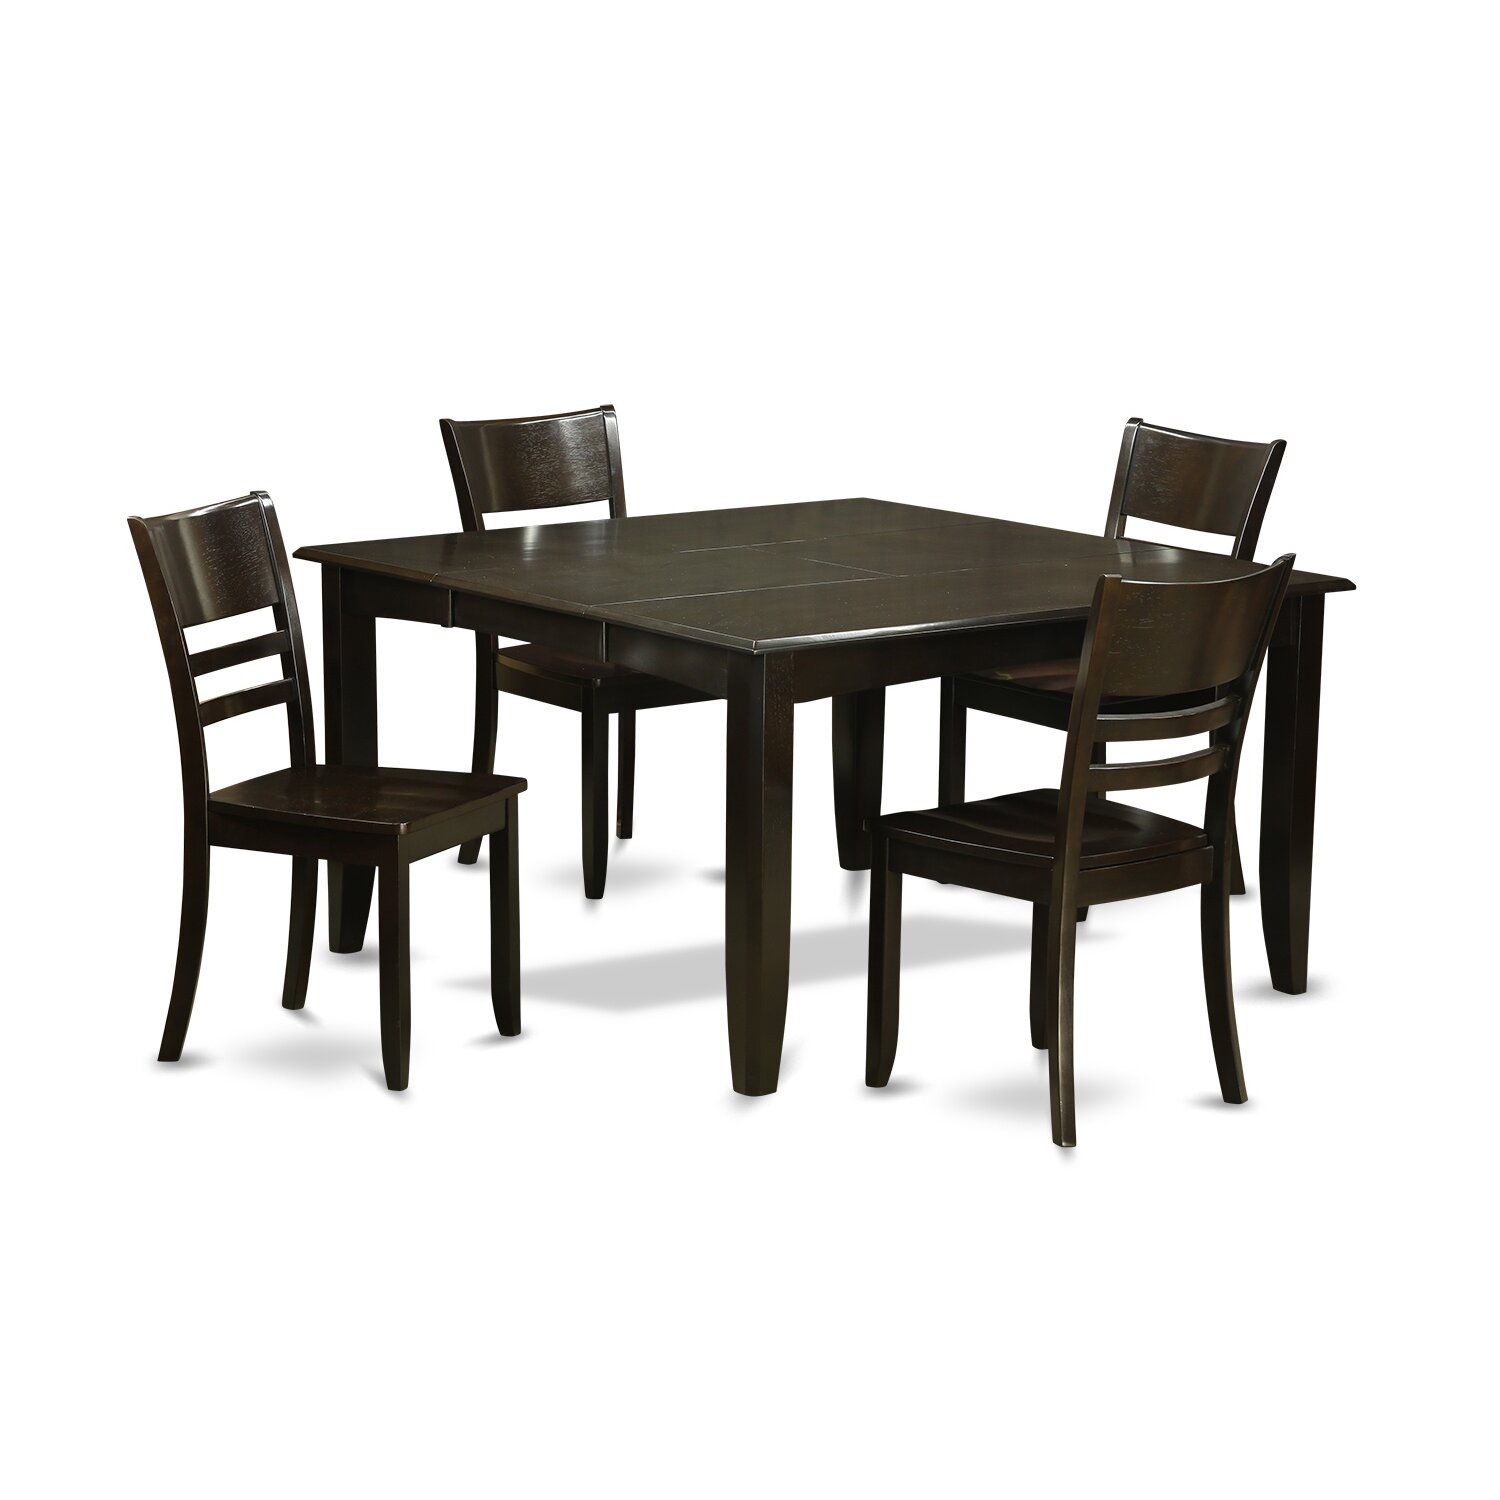 Wooden importers parfait 5 piece dining set wayfair for Dining room table replacement leaf